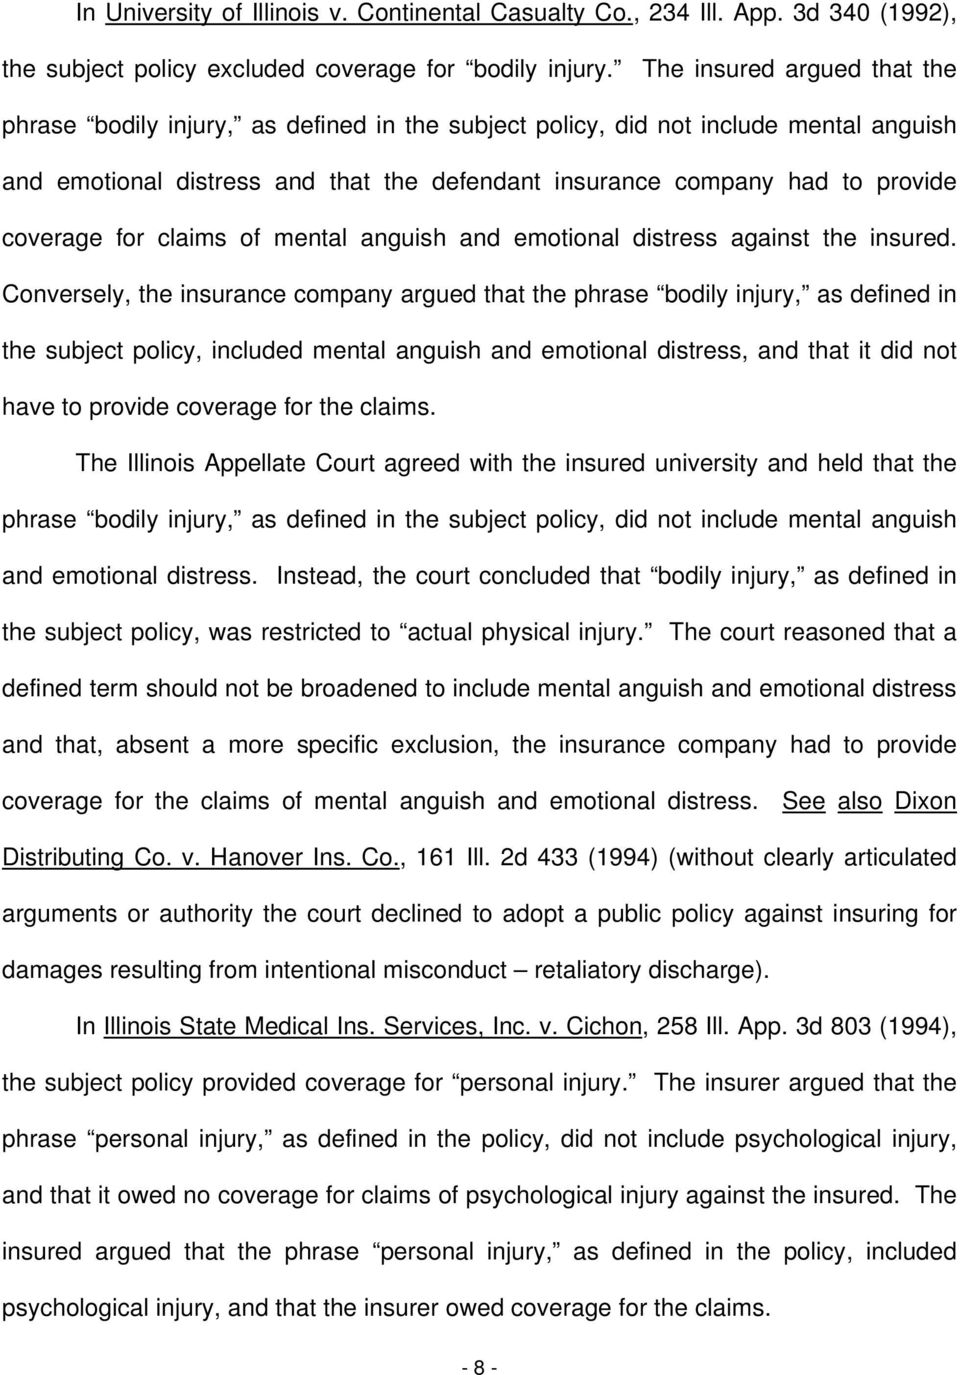 coverage for claims of mental anguish and emotional distress against the insured.